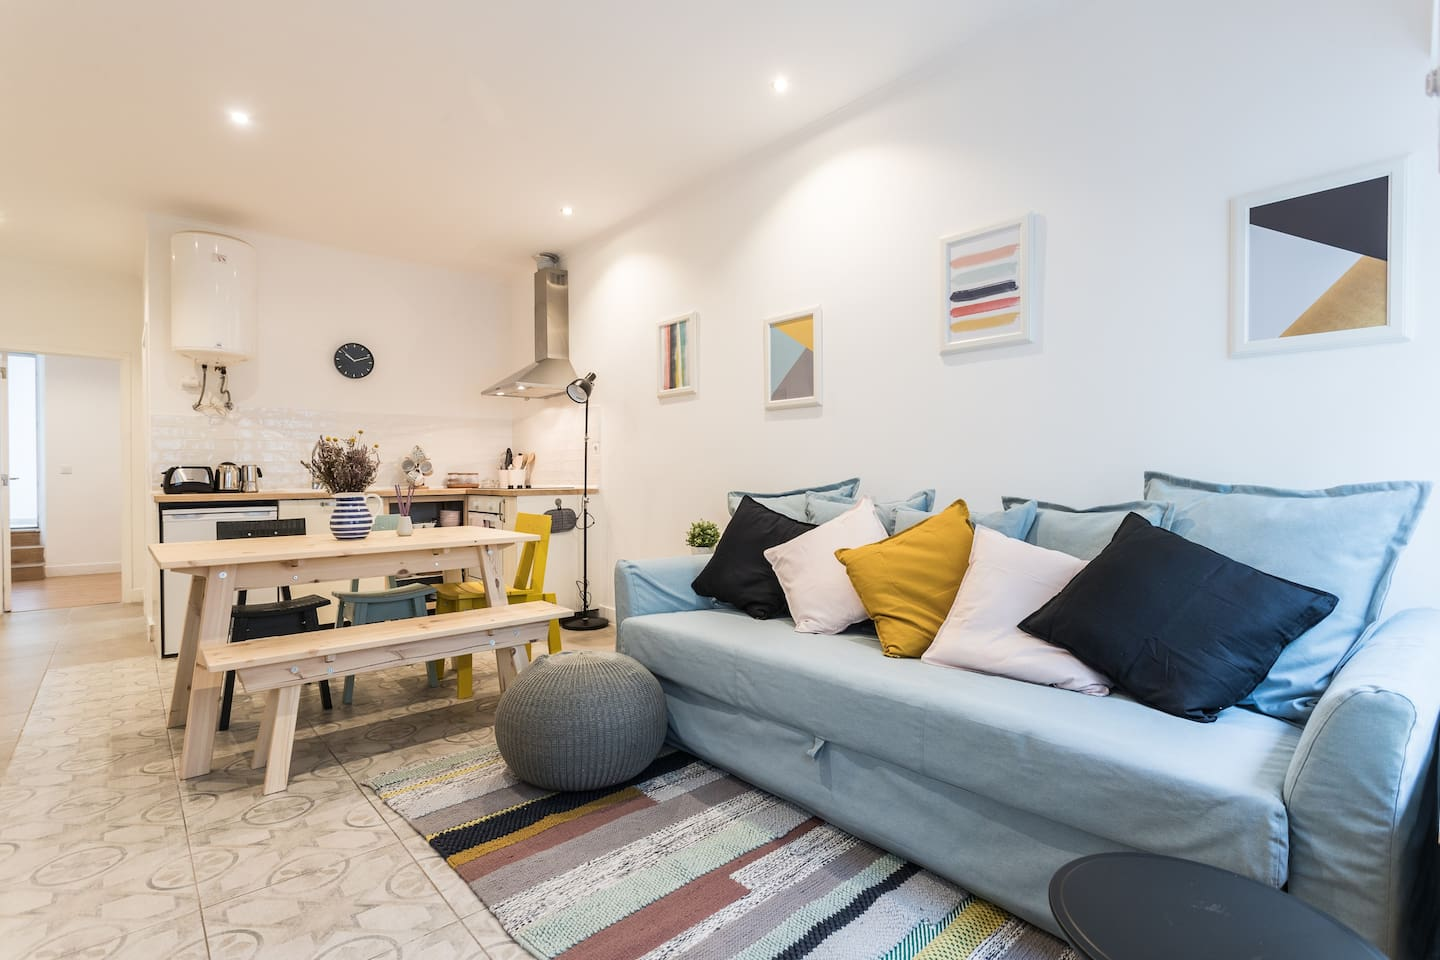 The design colours, materials and patterns have been carefully chosen to give a sense of cohesion and extra comfort throughout the apartment.